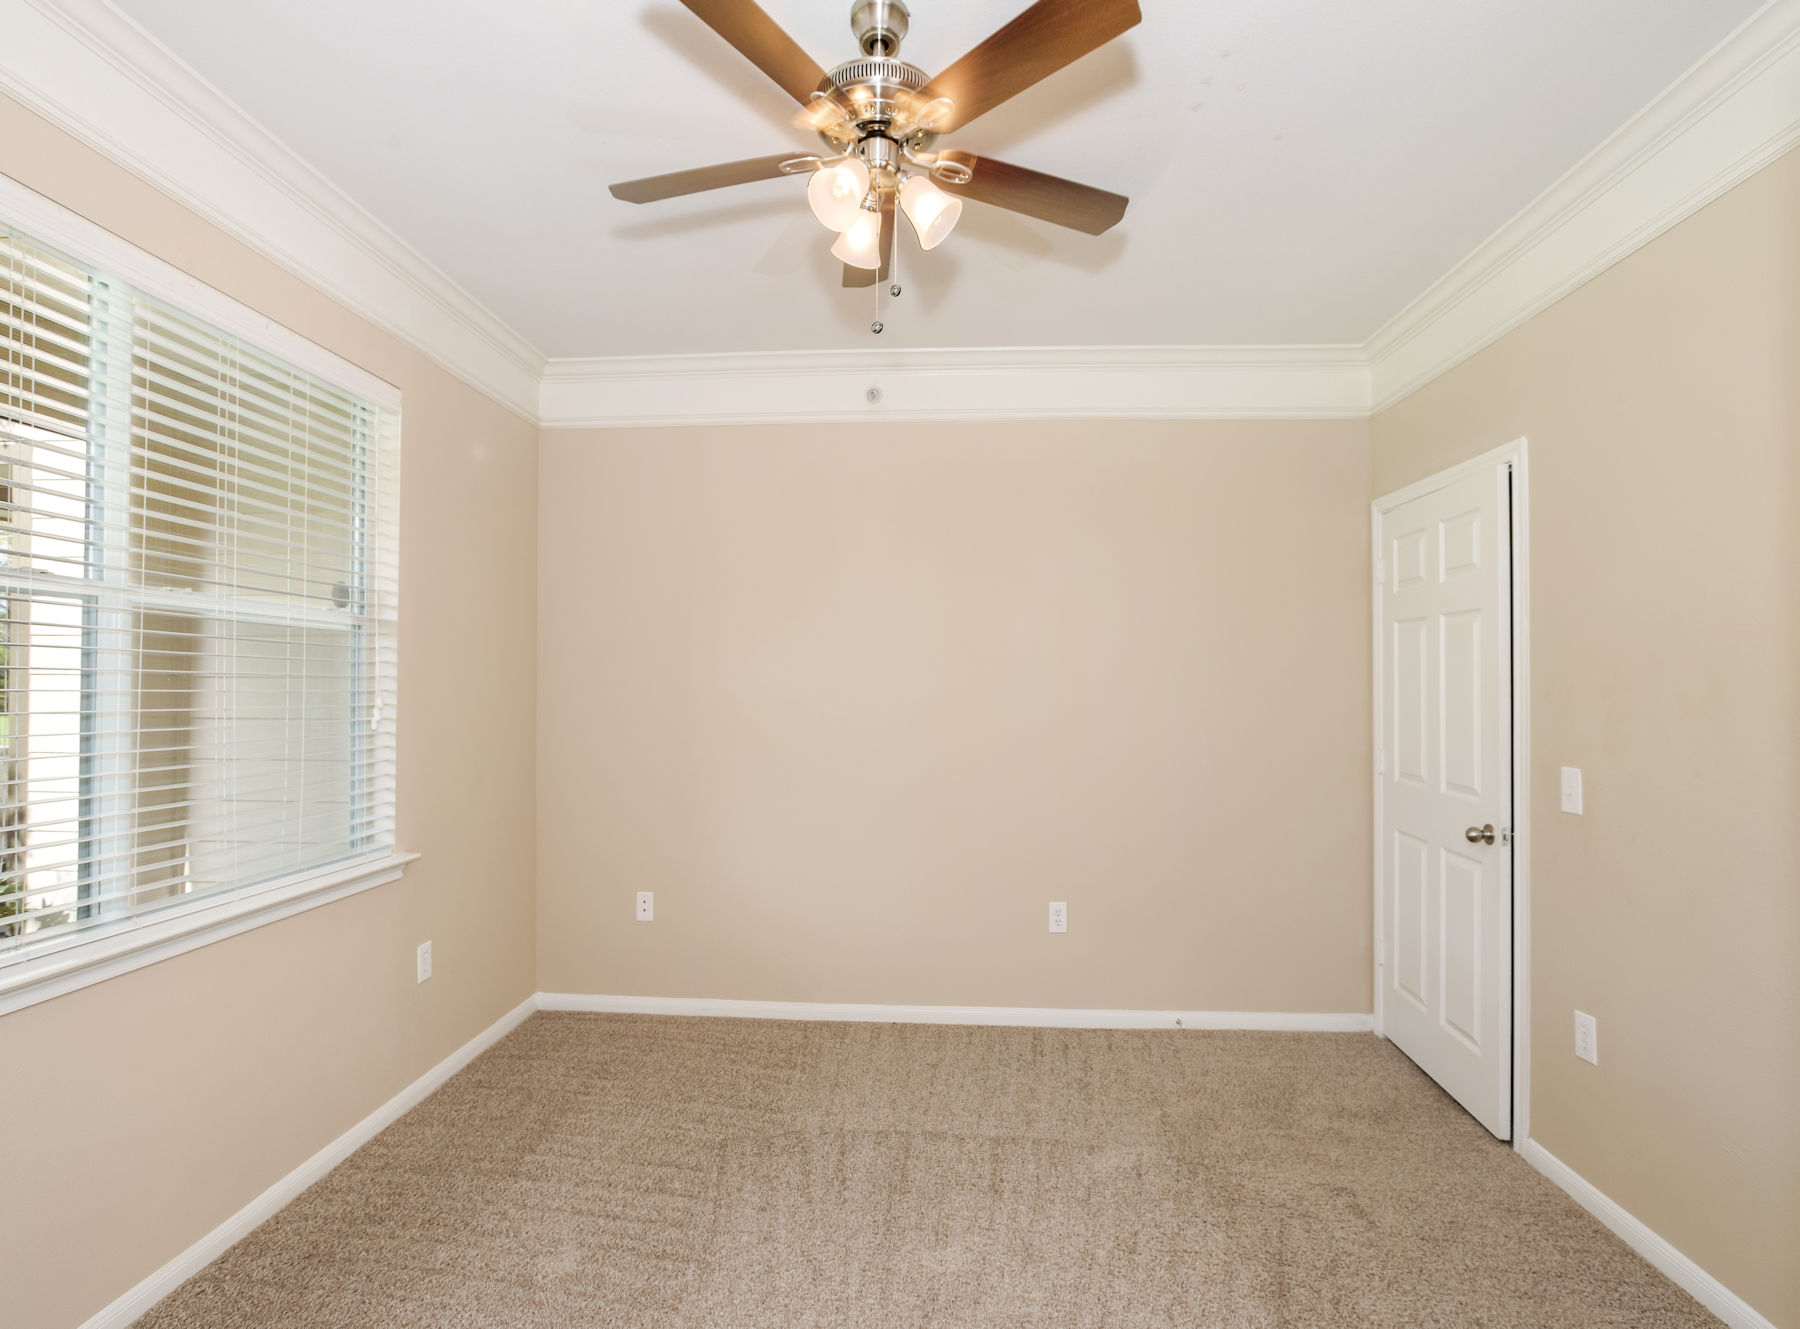 Model bedroom with ceiling fan, large window, and carpet.